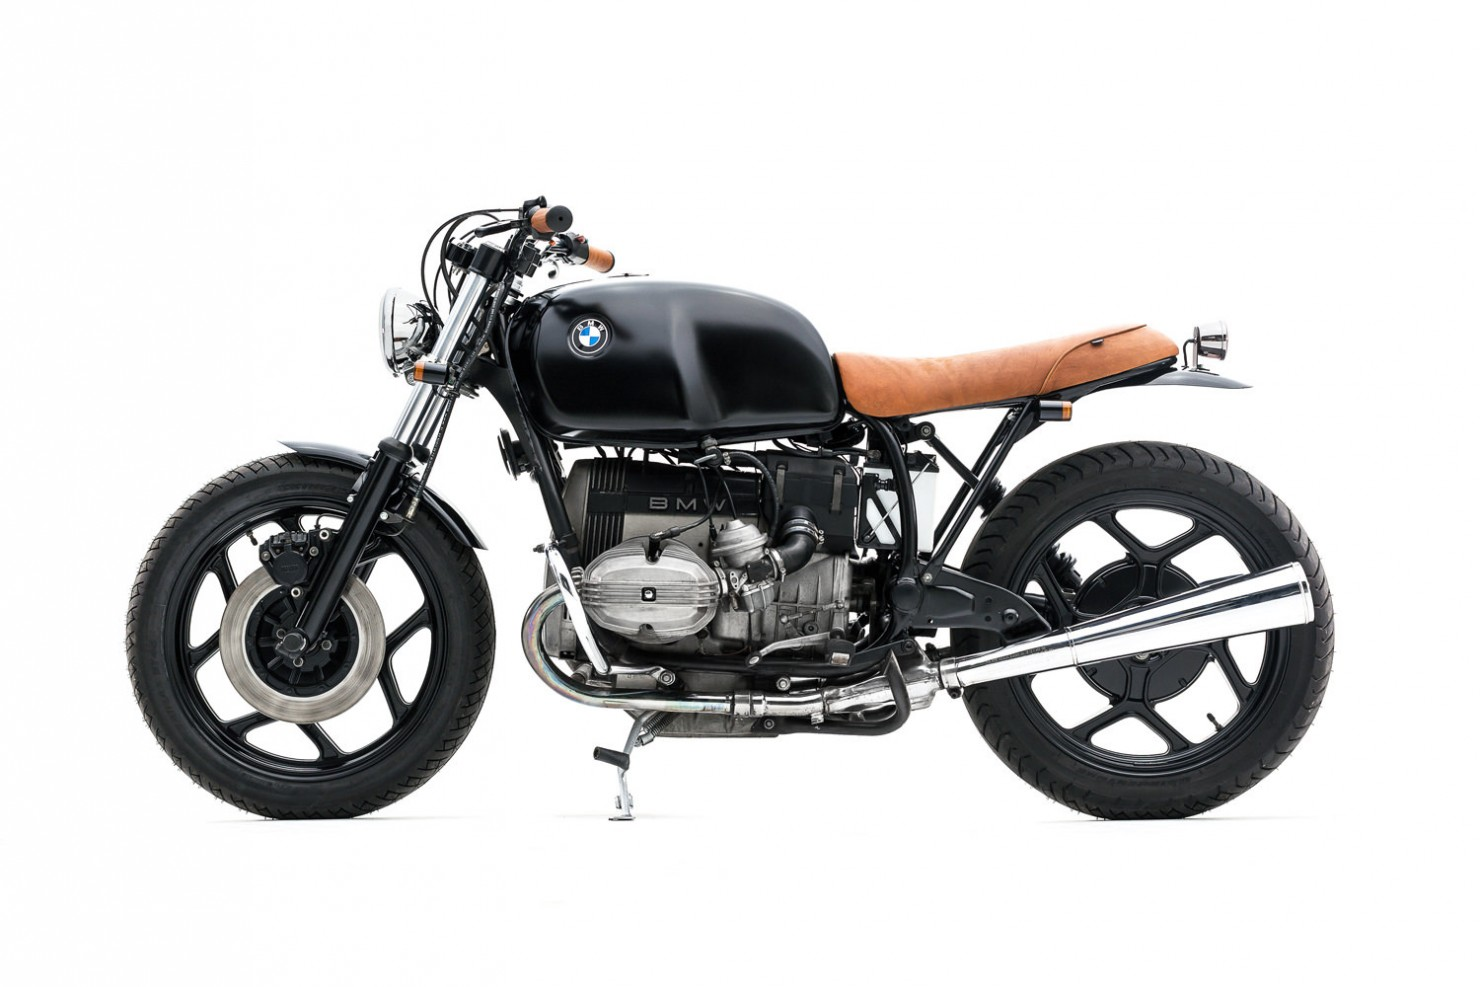 BMW-R65-Motorcycle-1